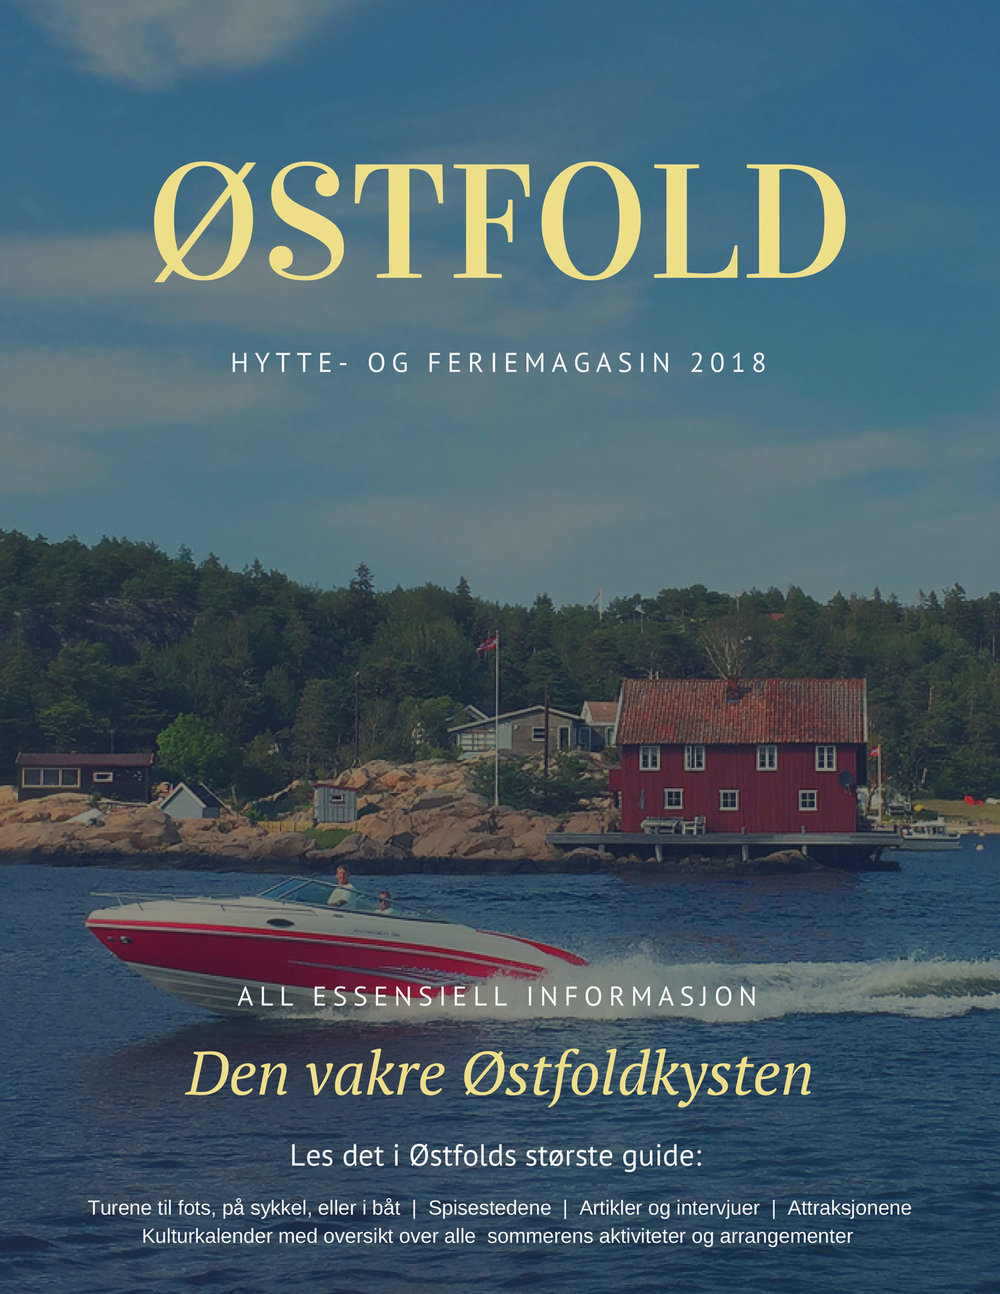 Ostfold-Ferie-og-hyttemagasin-2018-Kopi-av-Modern-Photo-Travel-Magazine-(1).jpg